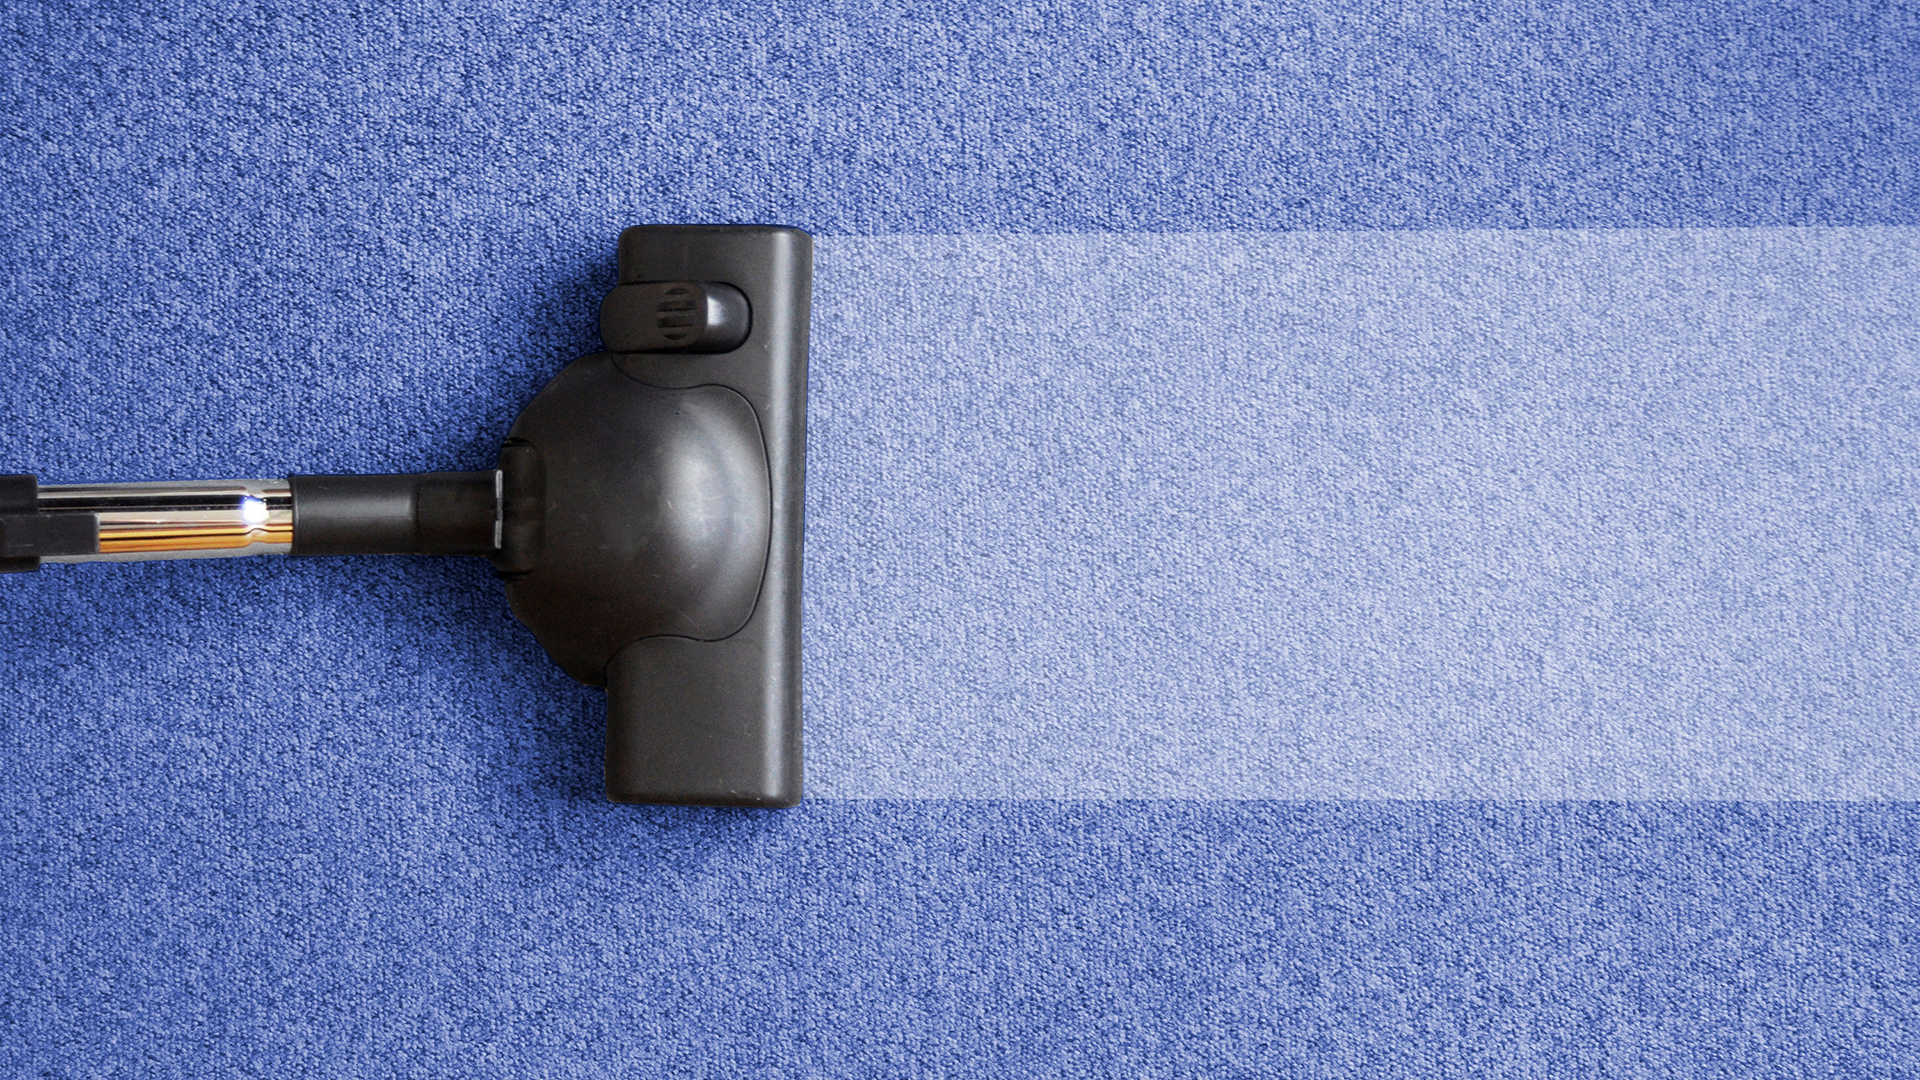 vacuum cleaner on the floor showing house cleaning concept, home, carpet